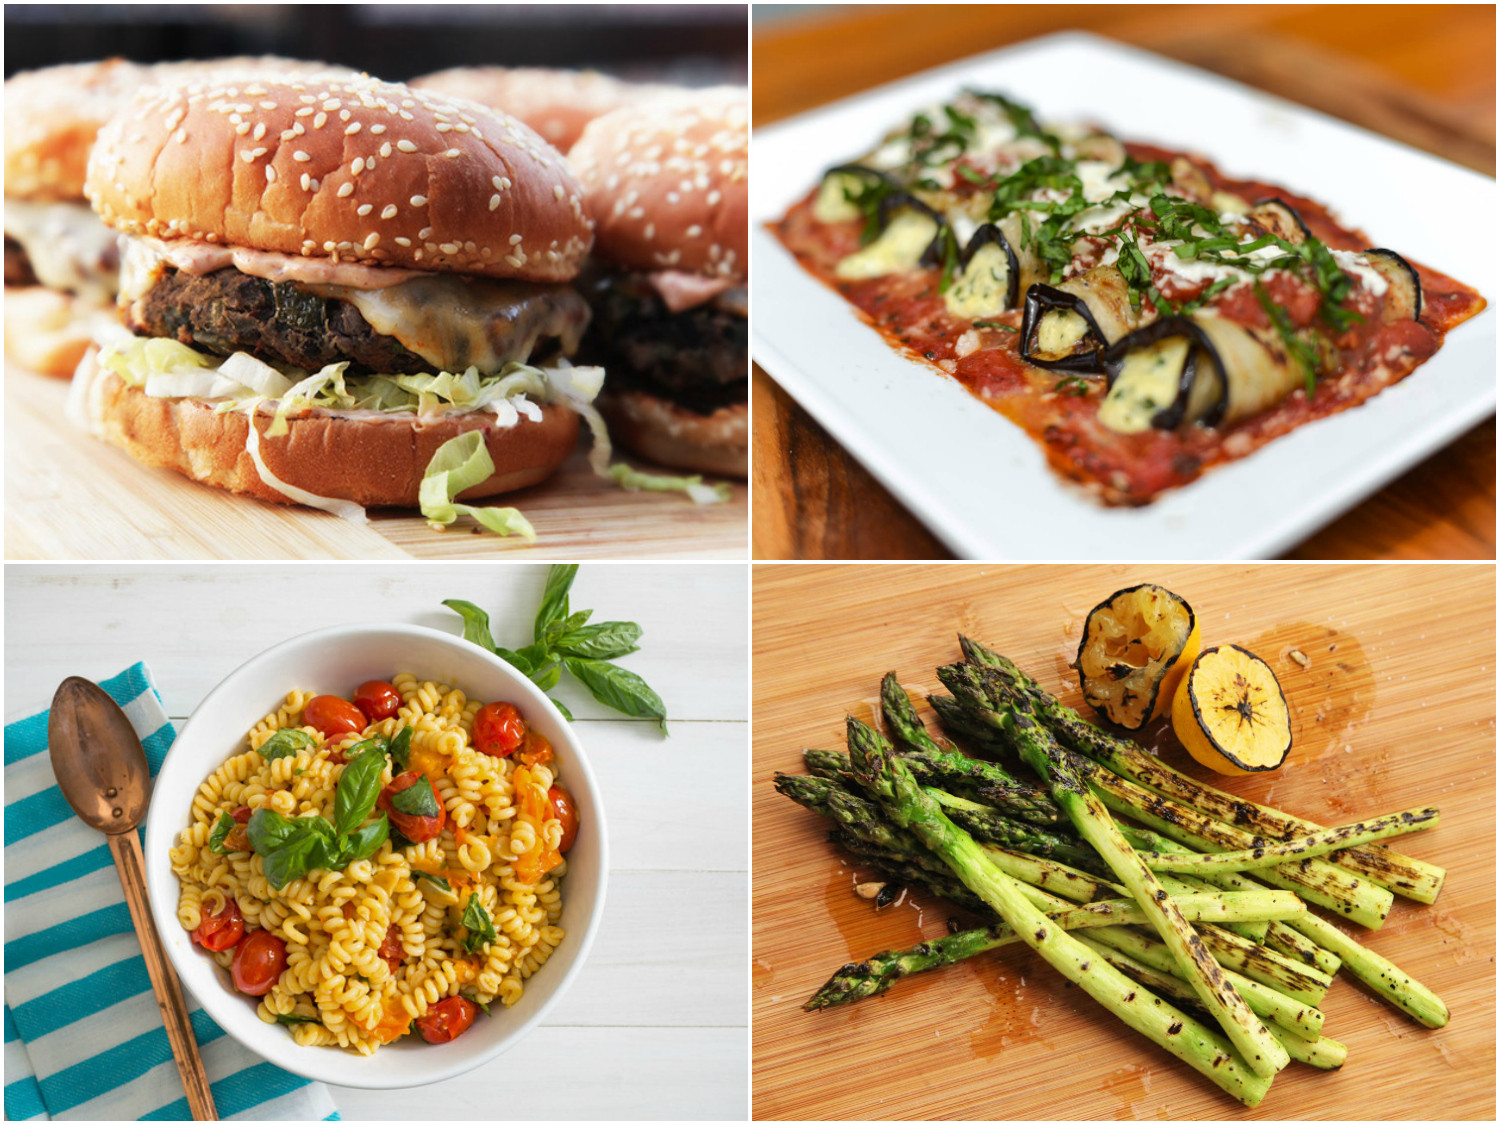 Vegetarian 4Th Of July Recipes  17 Ve arian Recipes That Will Steal the Show at Your